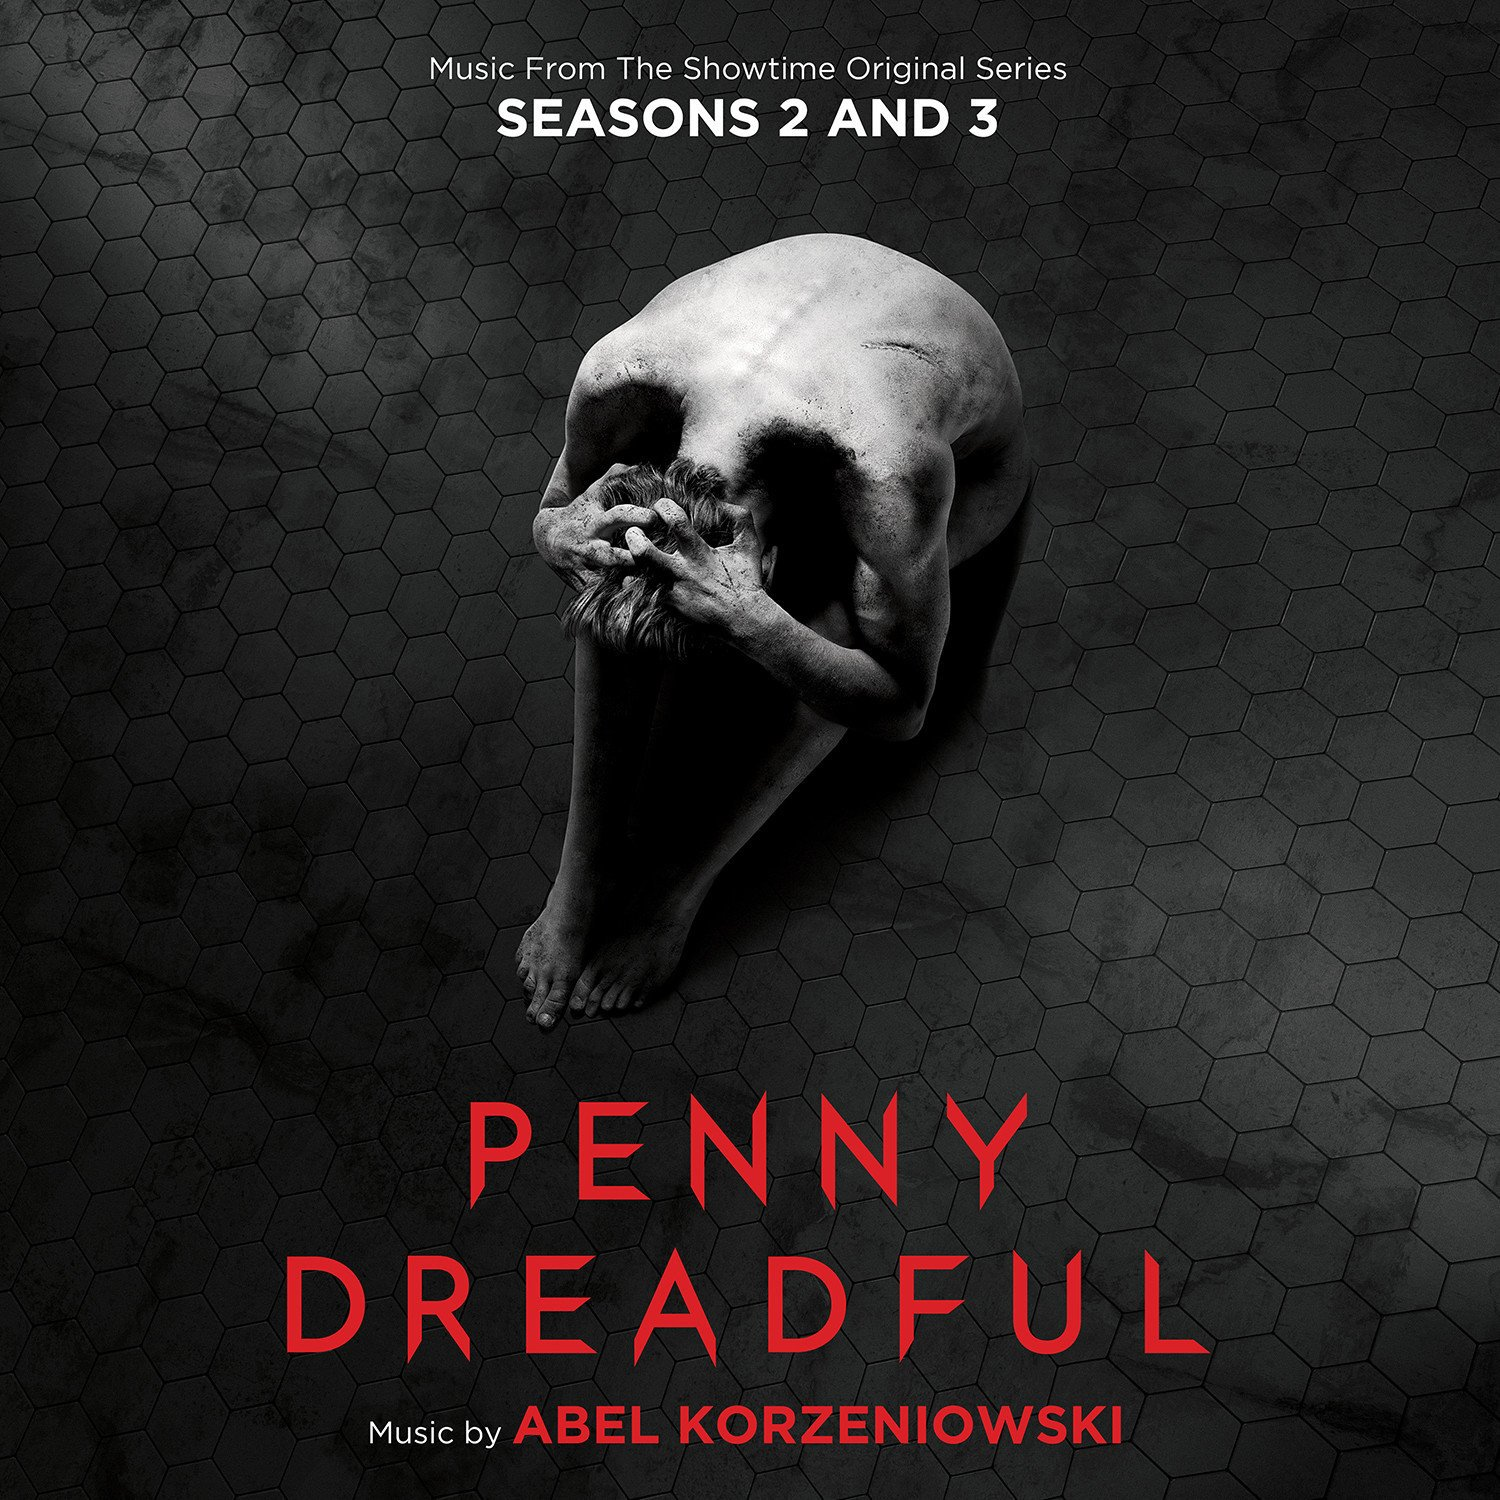 CD : Soundtrack - Penny Dreadful Seasons 2 & 3: Music From The Showtime Original Series (2 Disc)